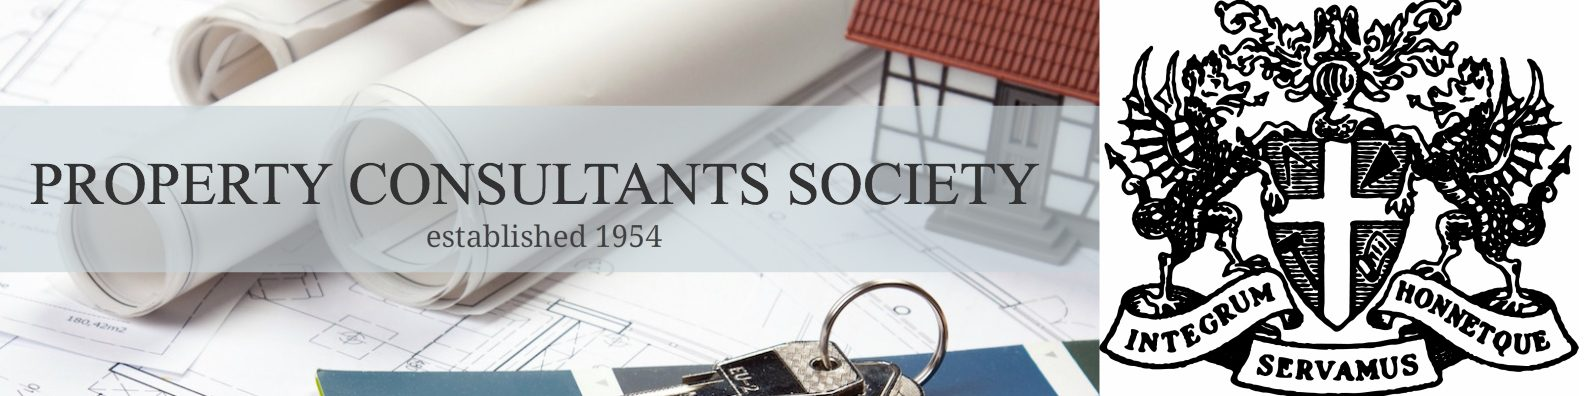 Property Consultants Society